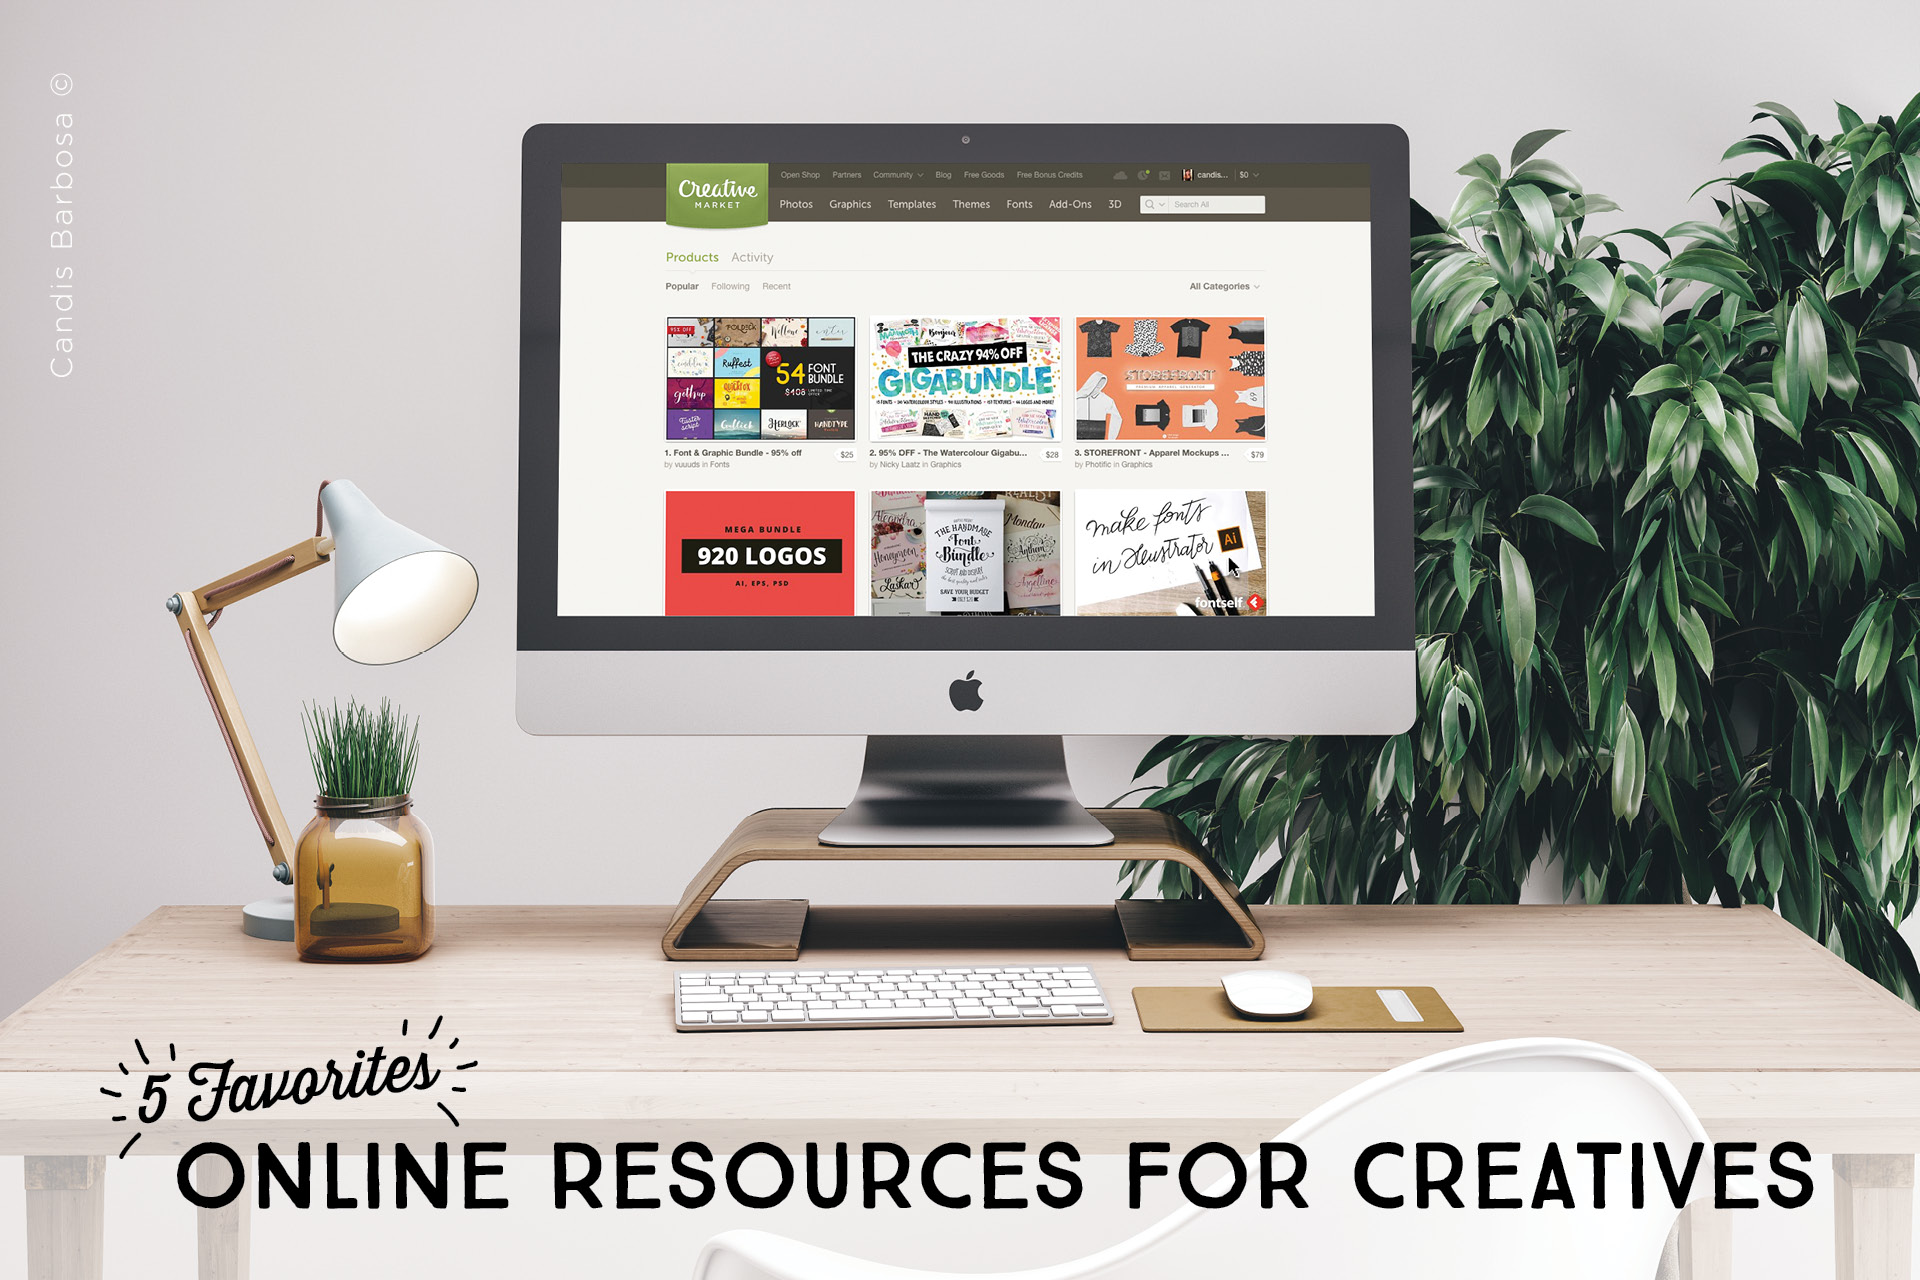 Online Resources for Creatives